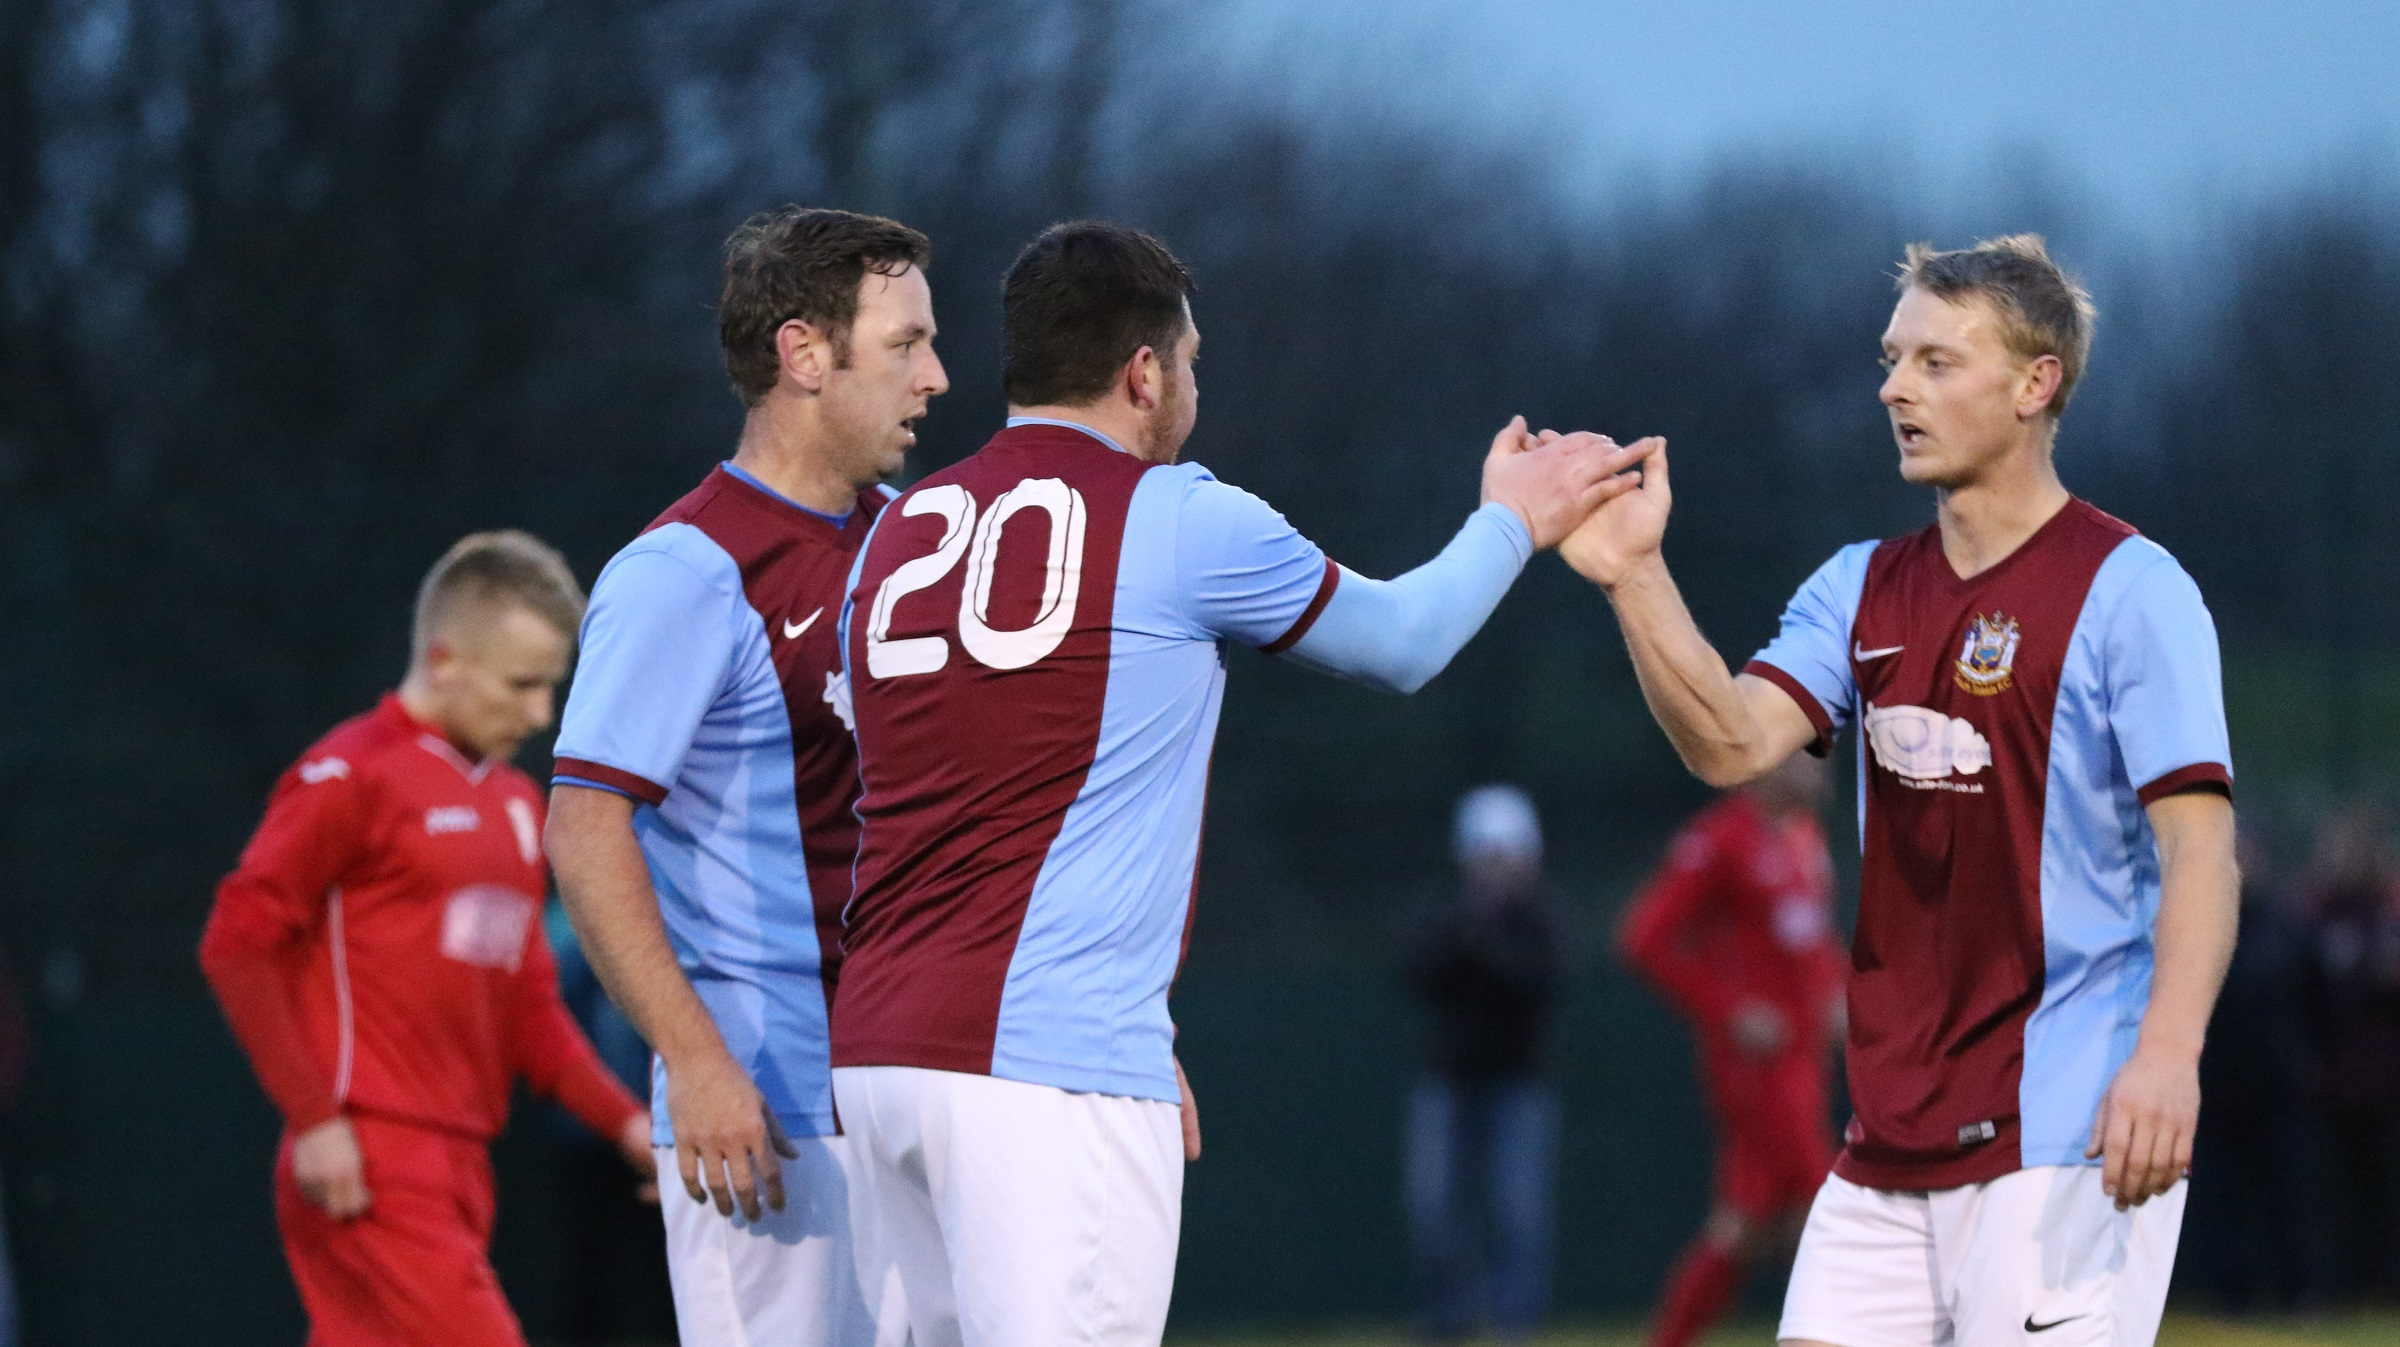 HIGHLIGHTS: South Shields 3-1 Bedlington Terriers (Friendly)